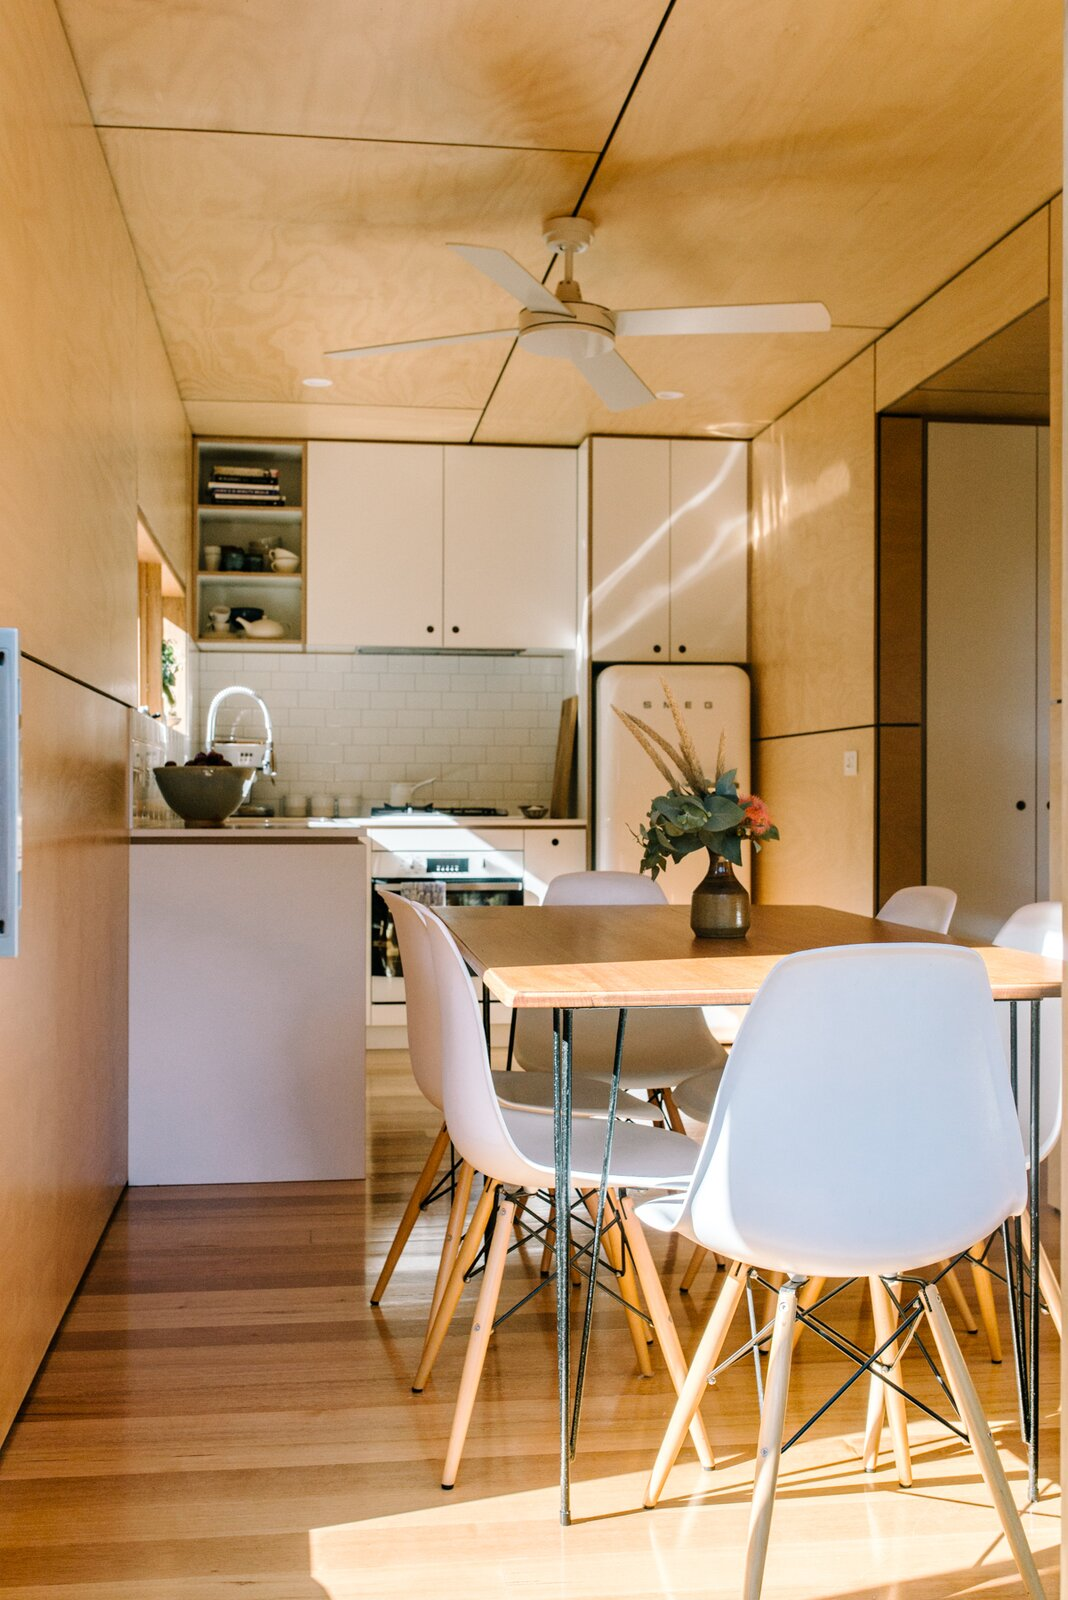 Wattle Bank shipping container tiny home kitchen and dining area